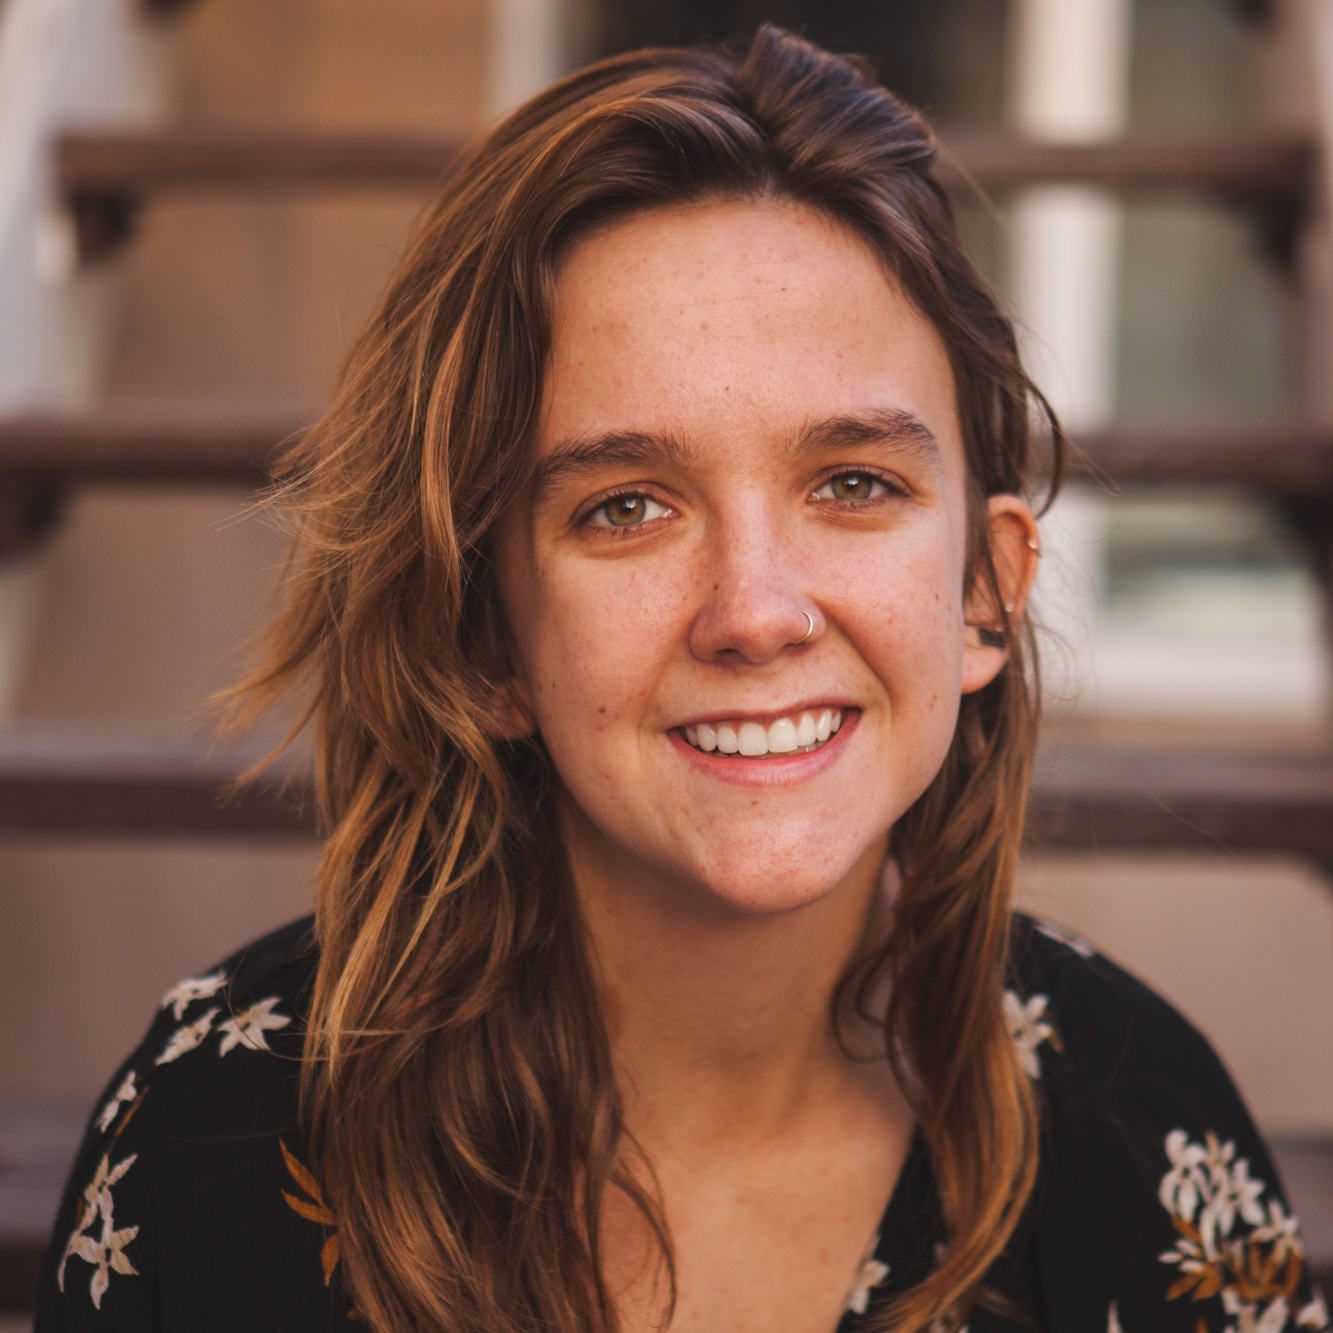 Copy Editor  Laurie Bullock  Laurie is a freelance writer and social media editor in Long Beach, California. She is passionate about writing and sharing stories to help people feel connected and inspire change. When she's not sitting in front of a computer, she's most likely to be found outside running, hiking, or swimming in the Pacific Ocean. Like most Southern Californian transplants, she's always on the hunt for the best taco place in the area.